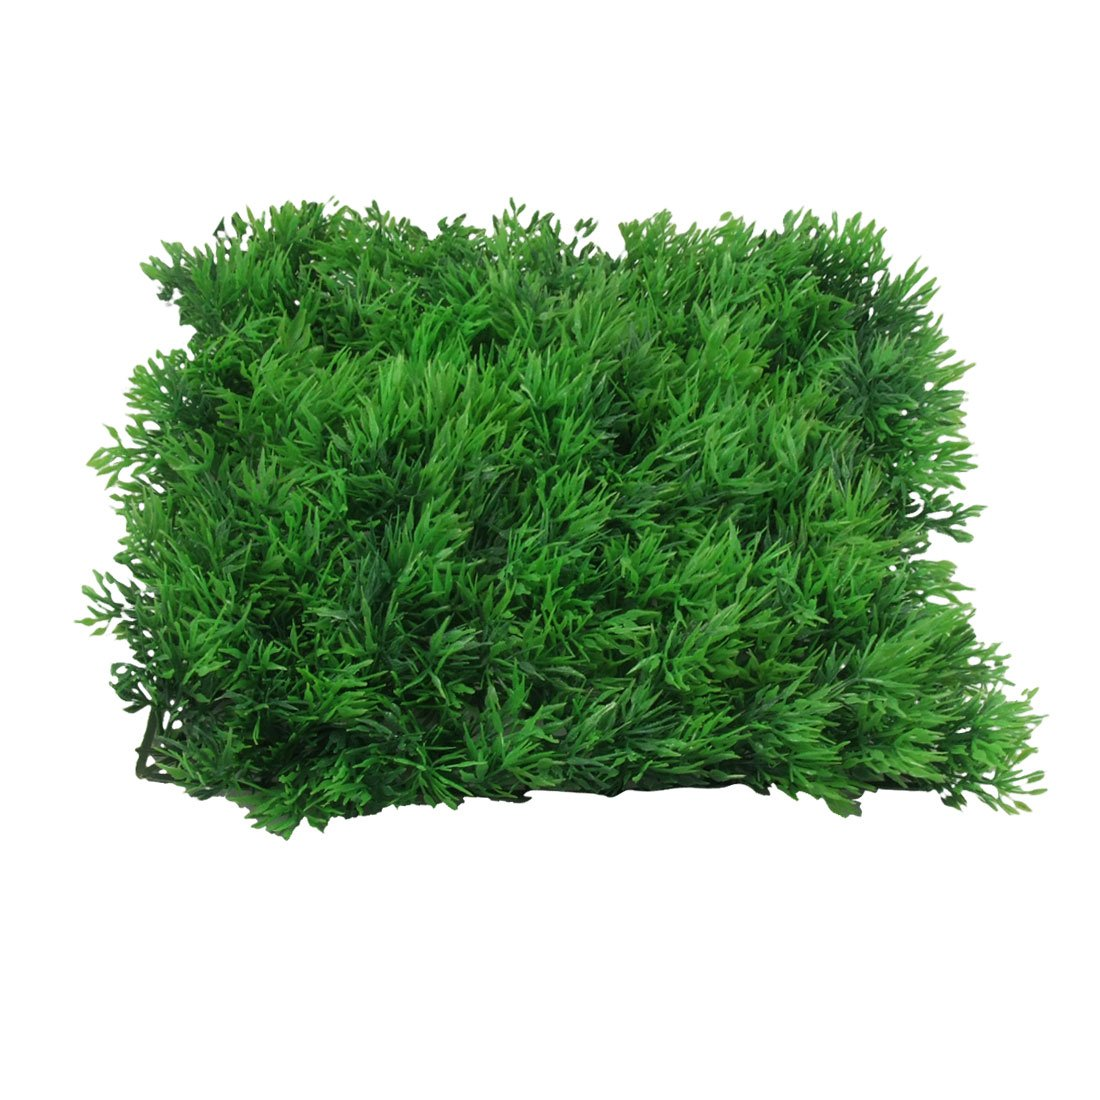 uxcell 10 x 10 Green Square Artificial Grass Lawn for Fish Tank Jardin